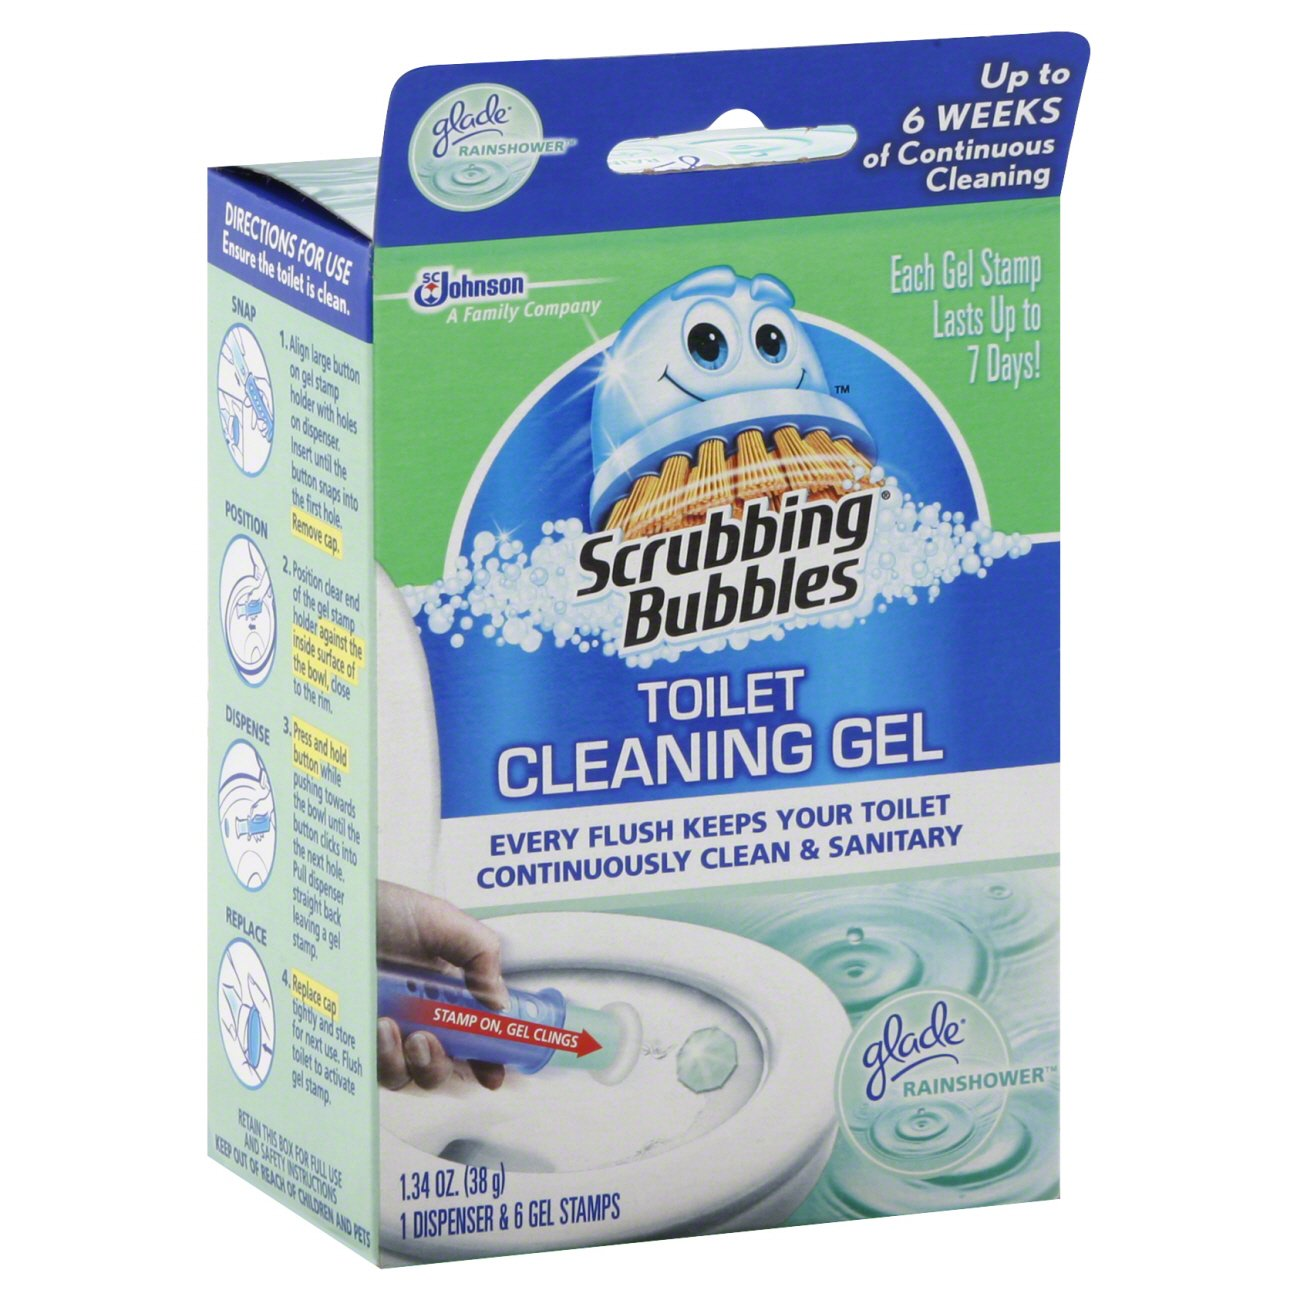 Scrubbing Bubbles Toilet Cleaning Gel